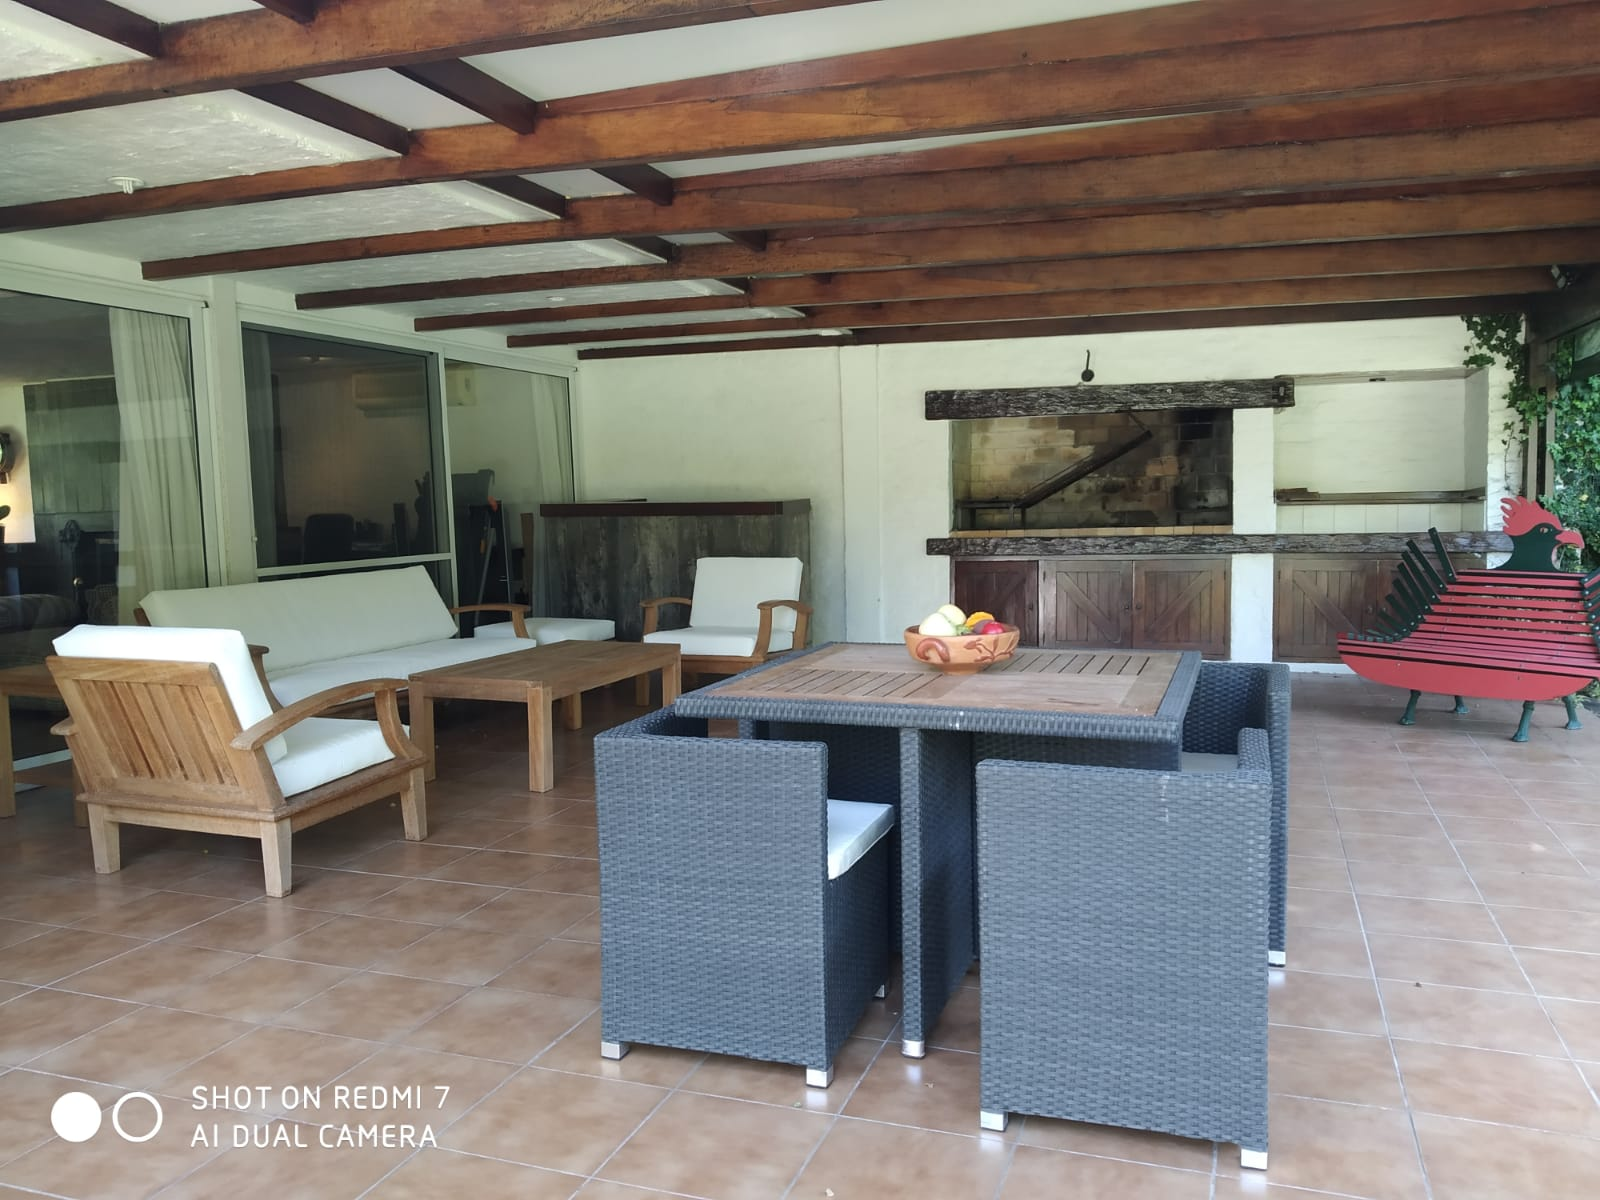 Spacious barbecue area, with barbecue and complete furniture